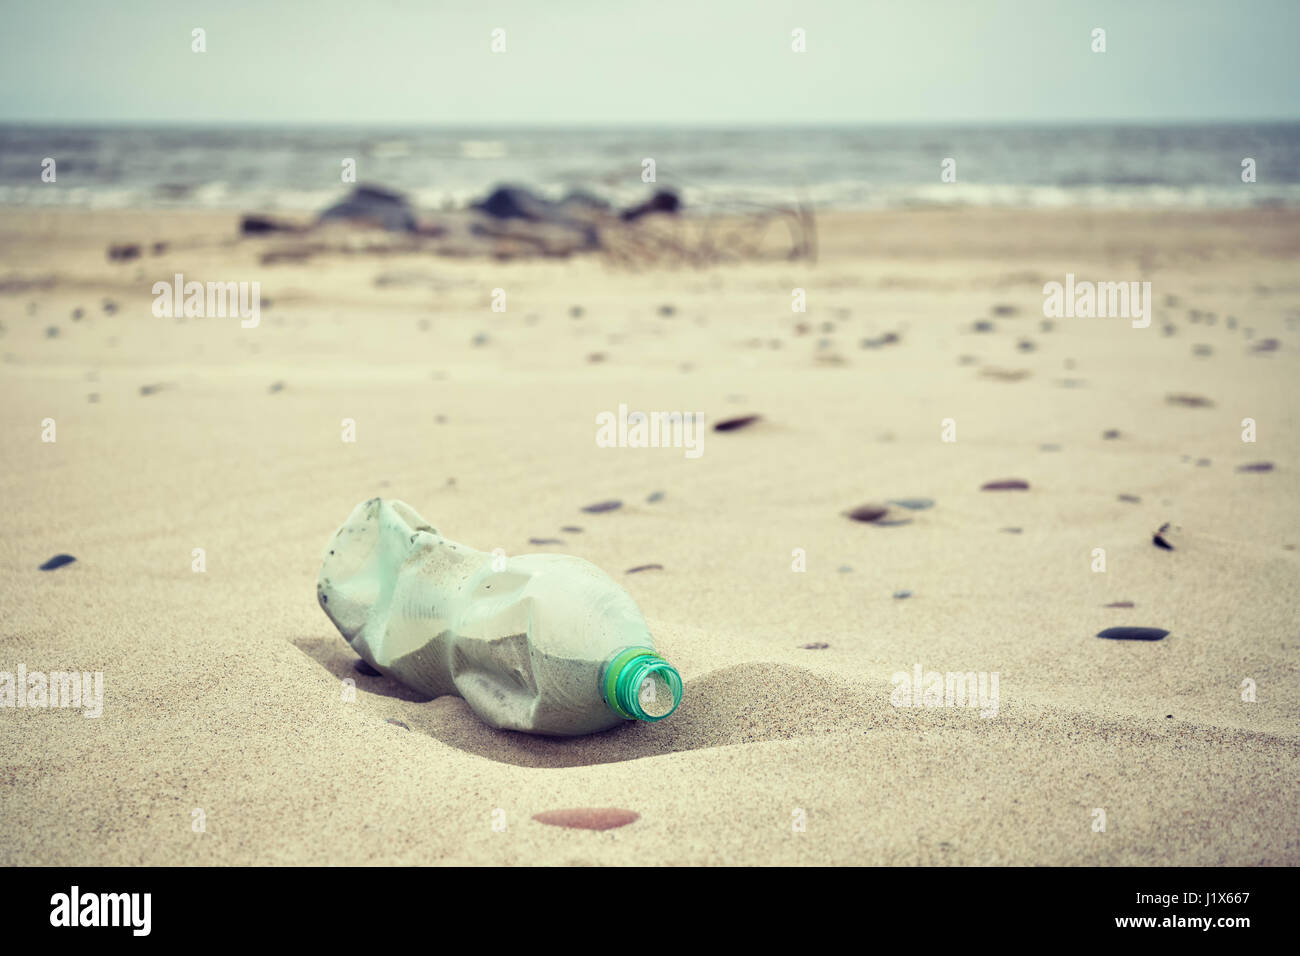 Retro stylized picture of an empty green plastic bottle left on a beach, selective focus, environmental pollution - Stock Image